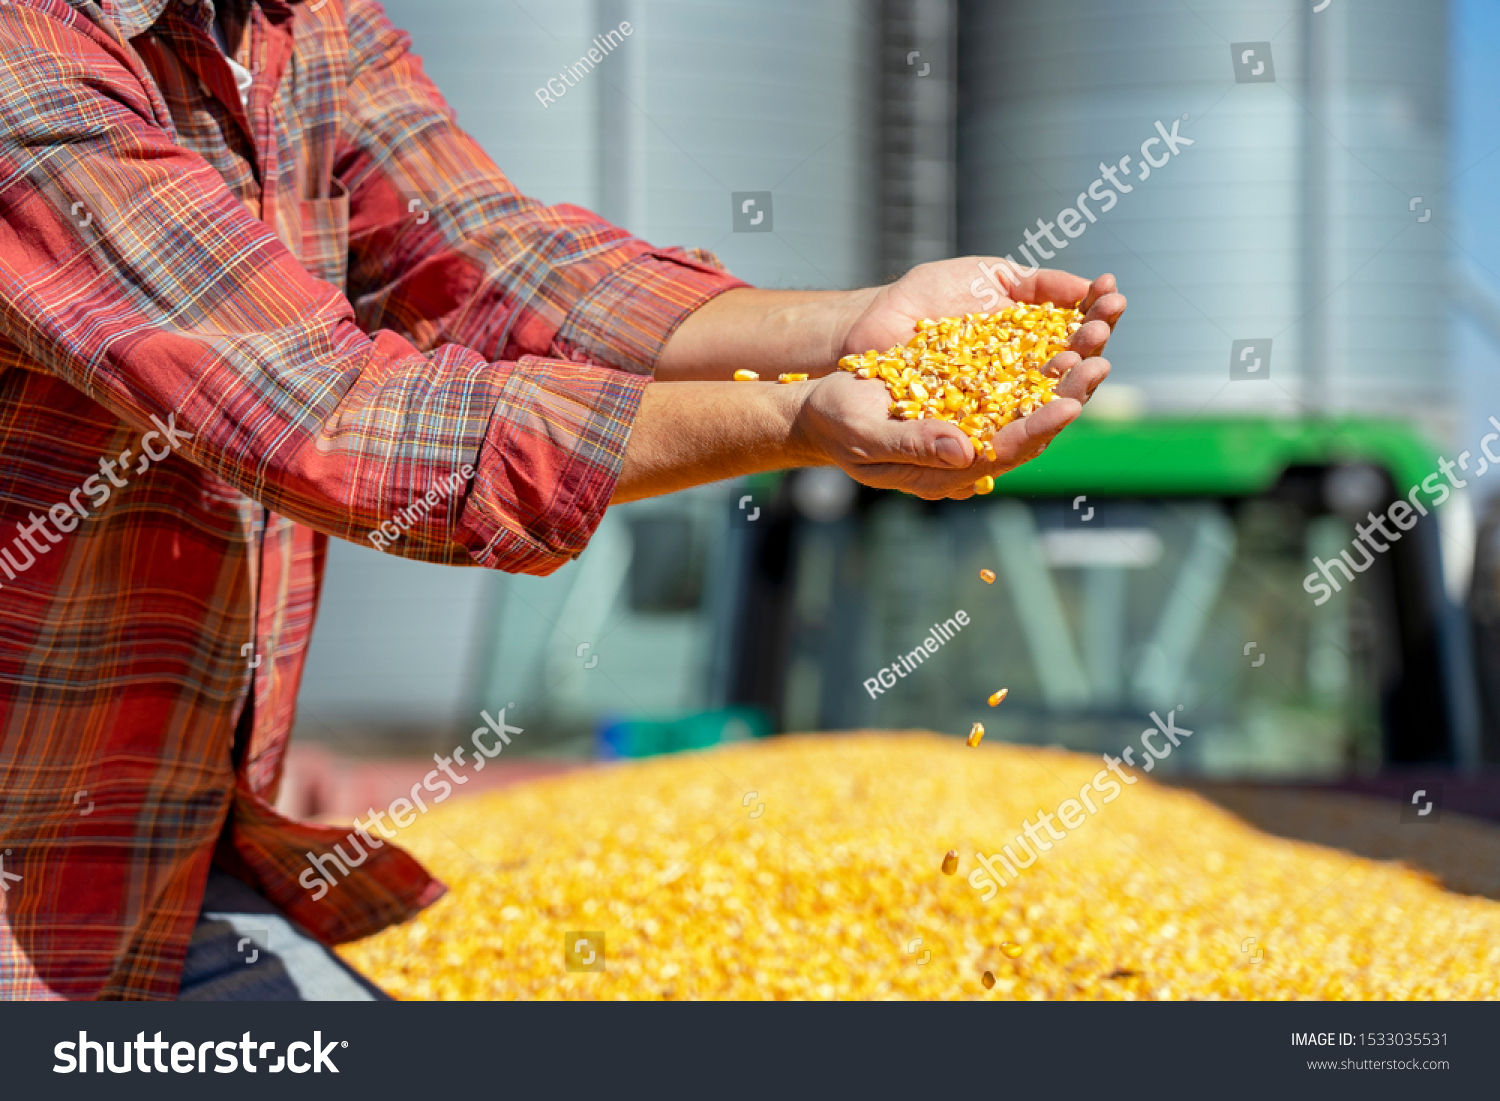 Farmer Showing Freshly Harvested Corn Maize Grains Against Grain Silo. Farmer's Hands Holding Harvested Grain Corn. Farmer with Corn Kernels in His Hands Sitting in Trailer Full of Corn Seeds. #1533035531